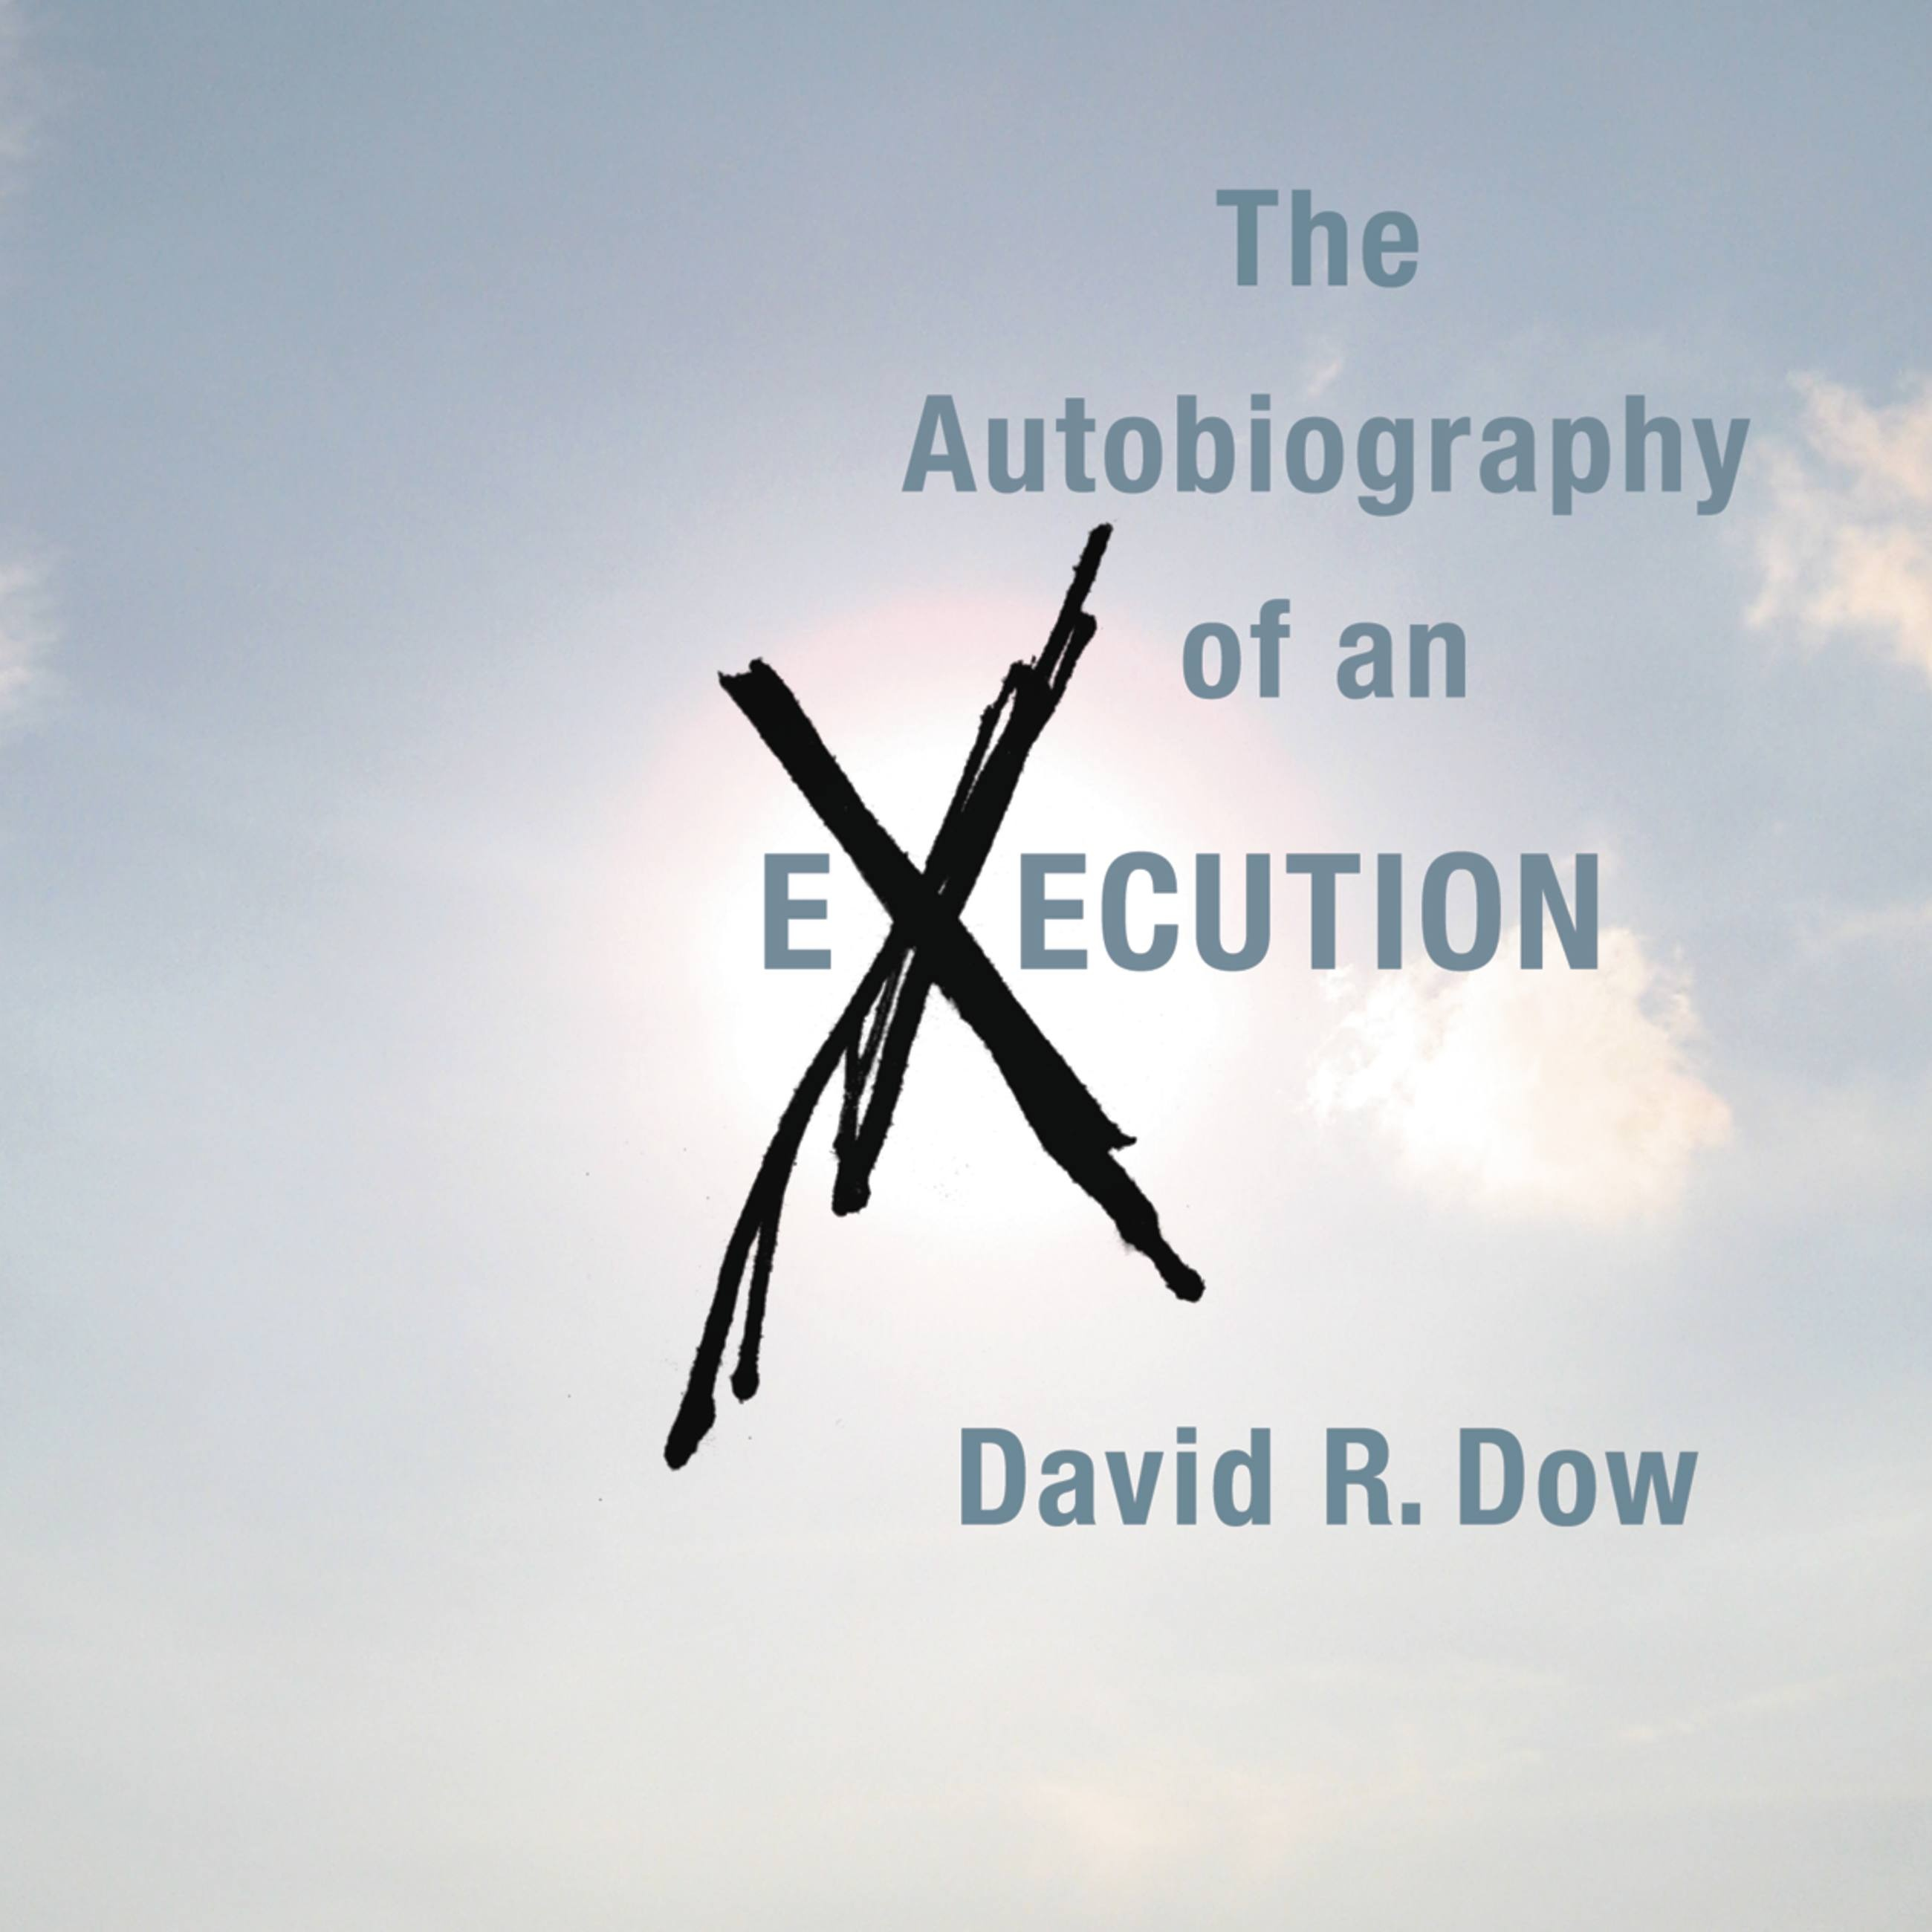 The Autobiography of an Execution